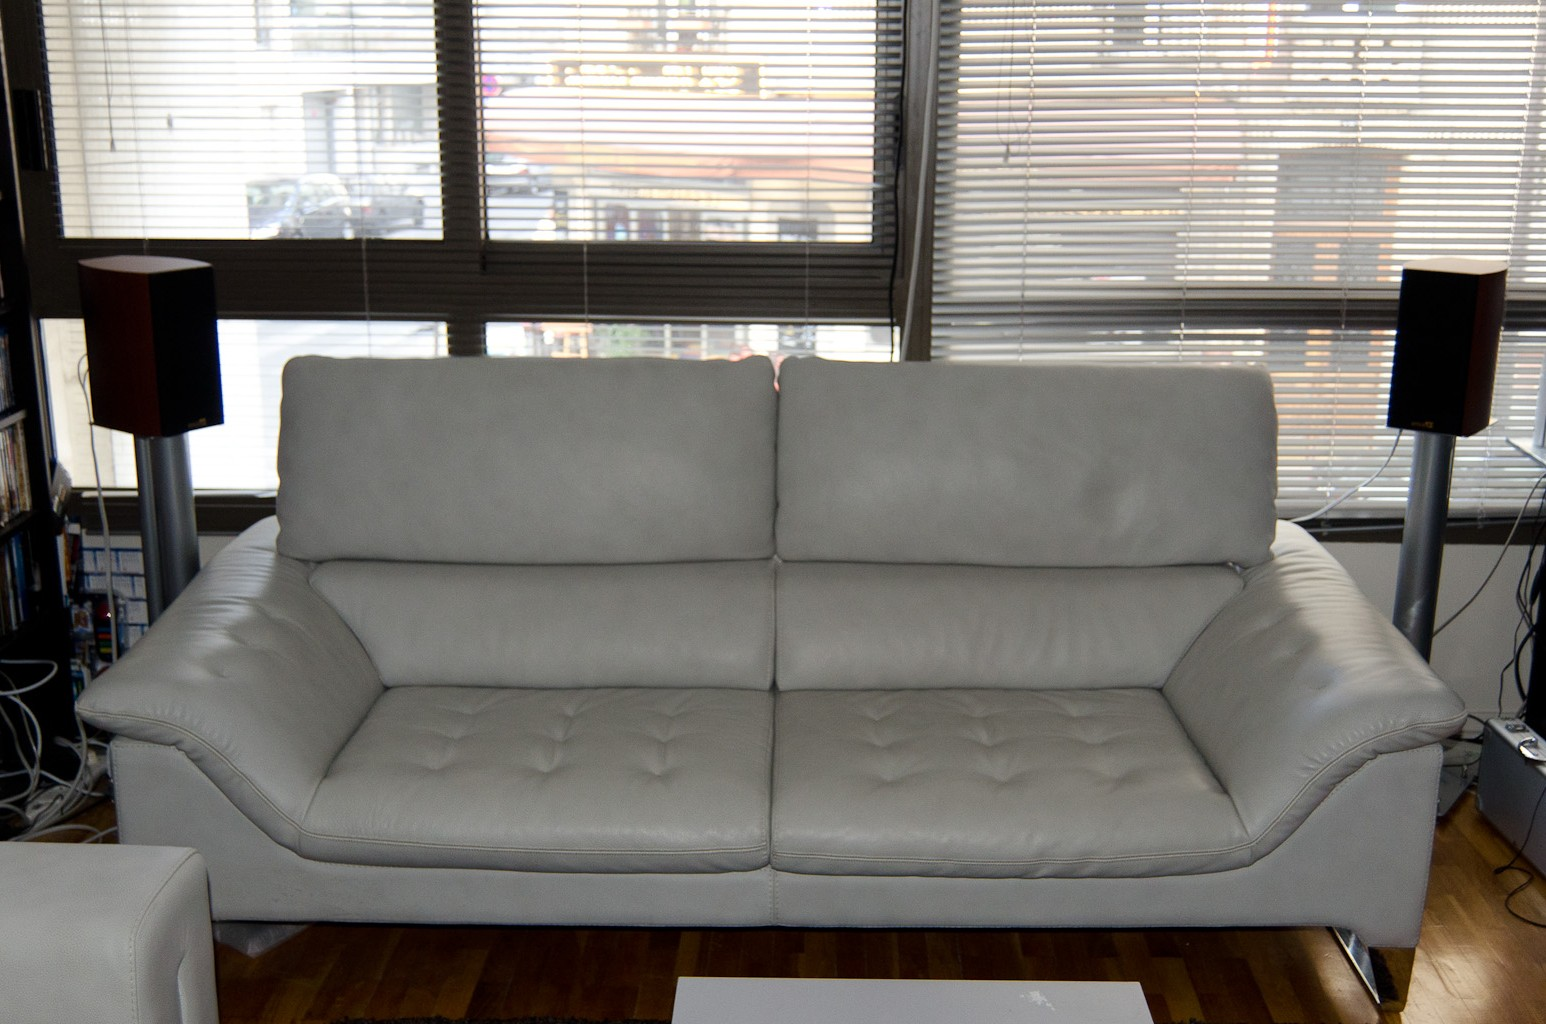 Id banquette canap for Catalogue canape roche bobois